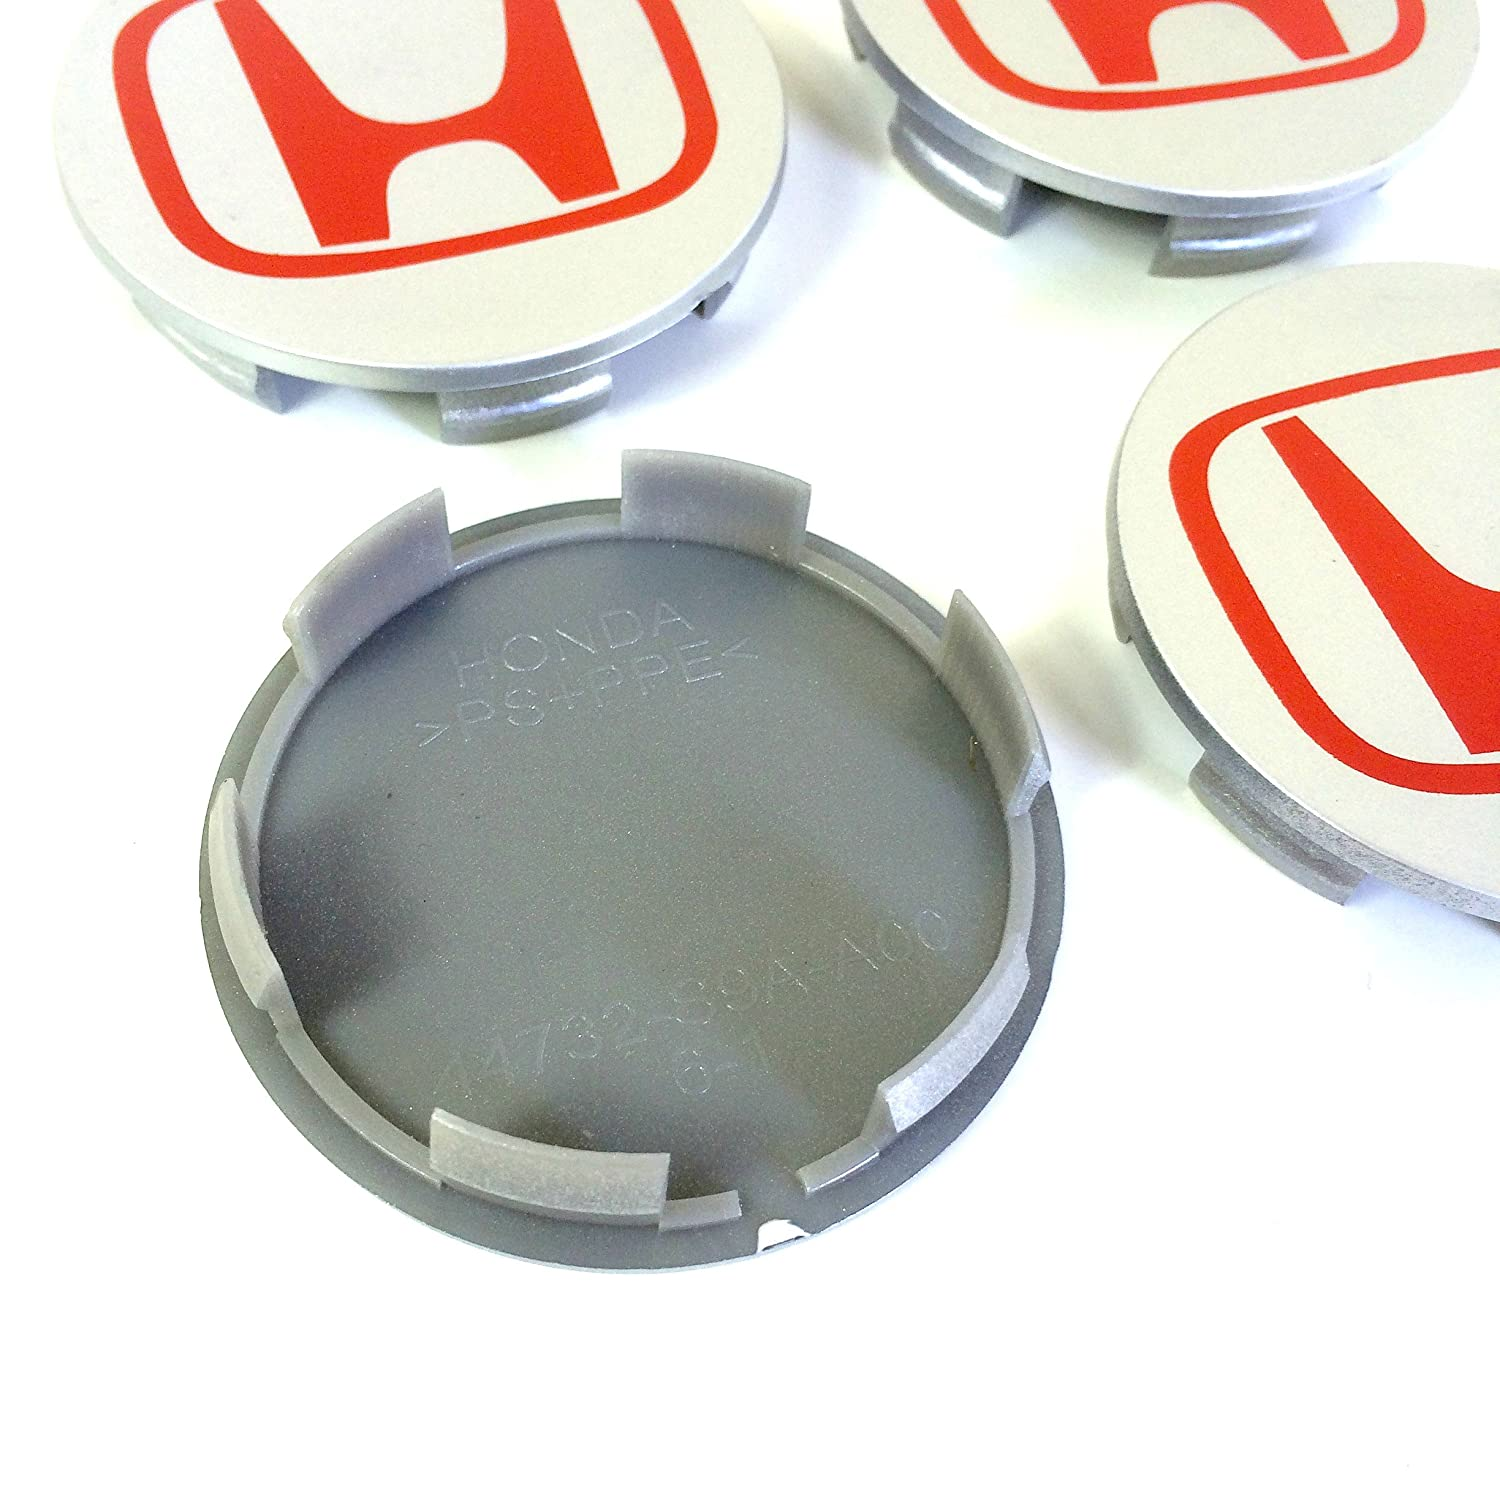 Set of 4/Honda Alloy Wheel Centre Caps Wheel centre covers 68/mm Accord Civic Type R GT Sport 2.0/i-VTEC Turbo EP3/FN2/and Other Models Black // Red Logo Badge